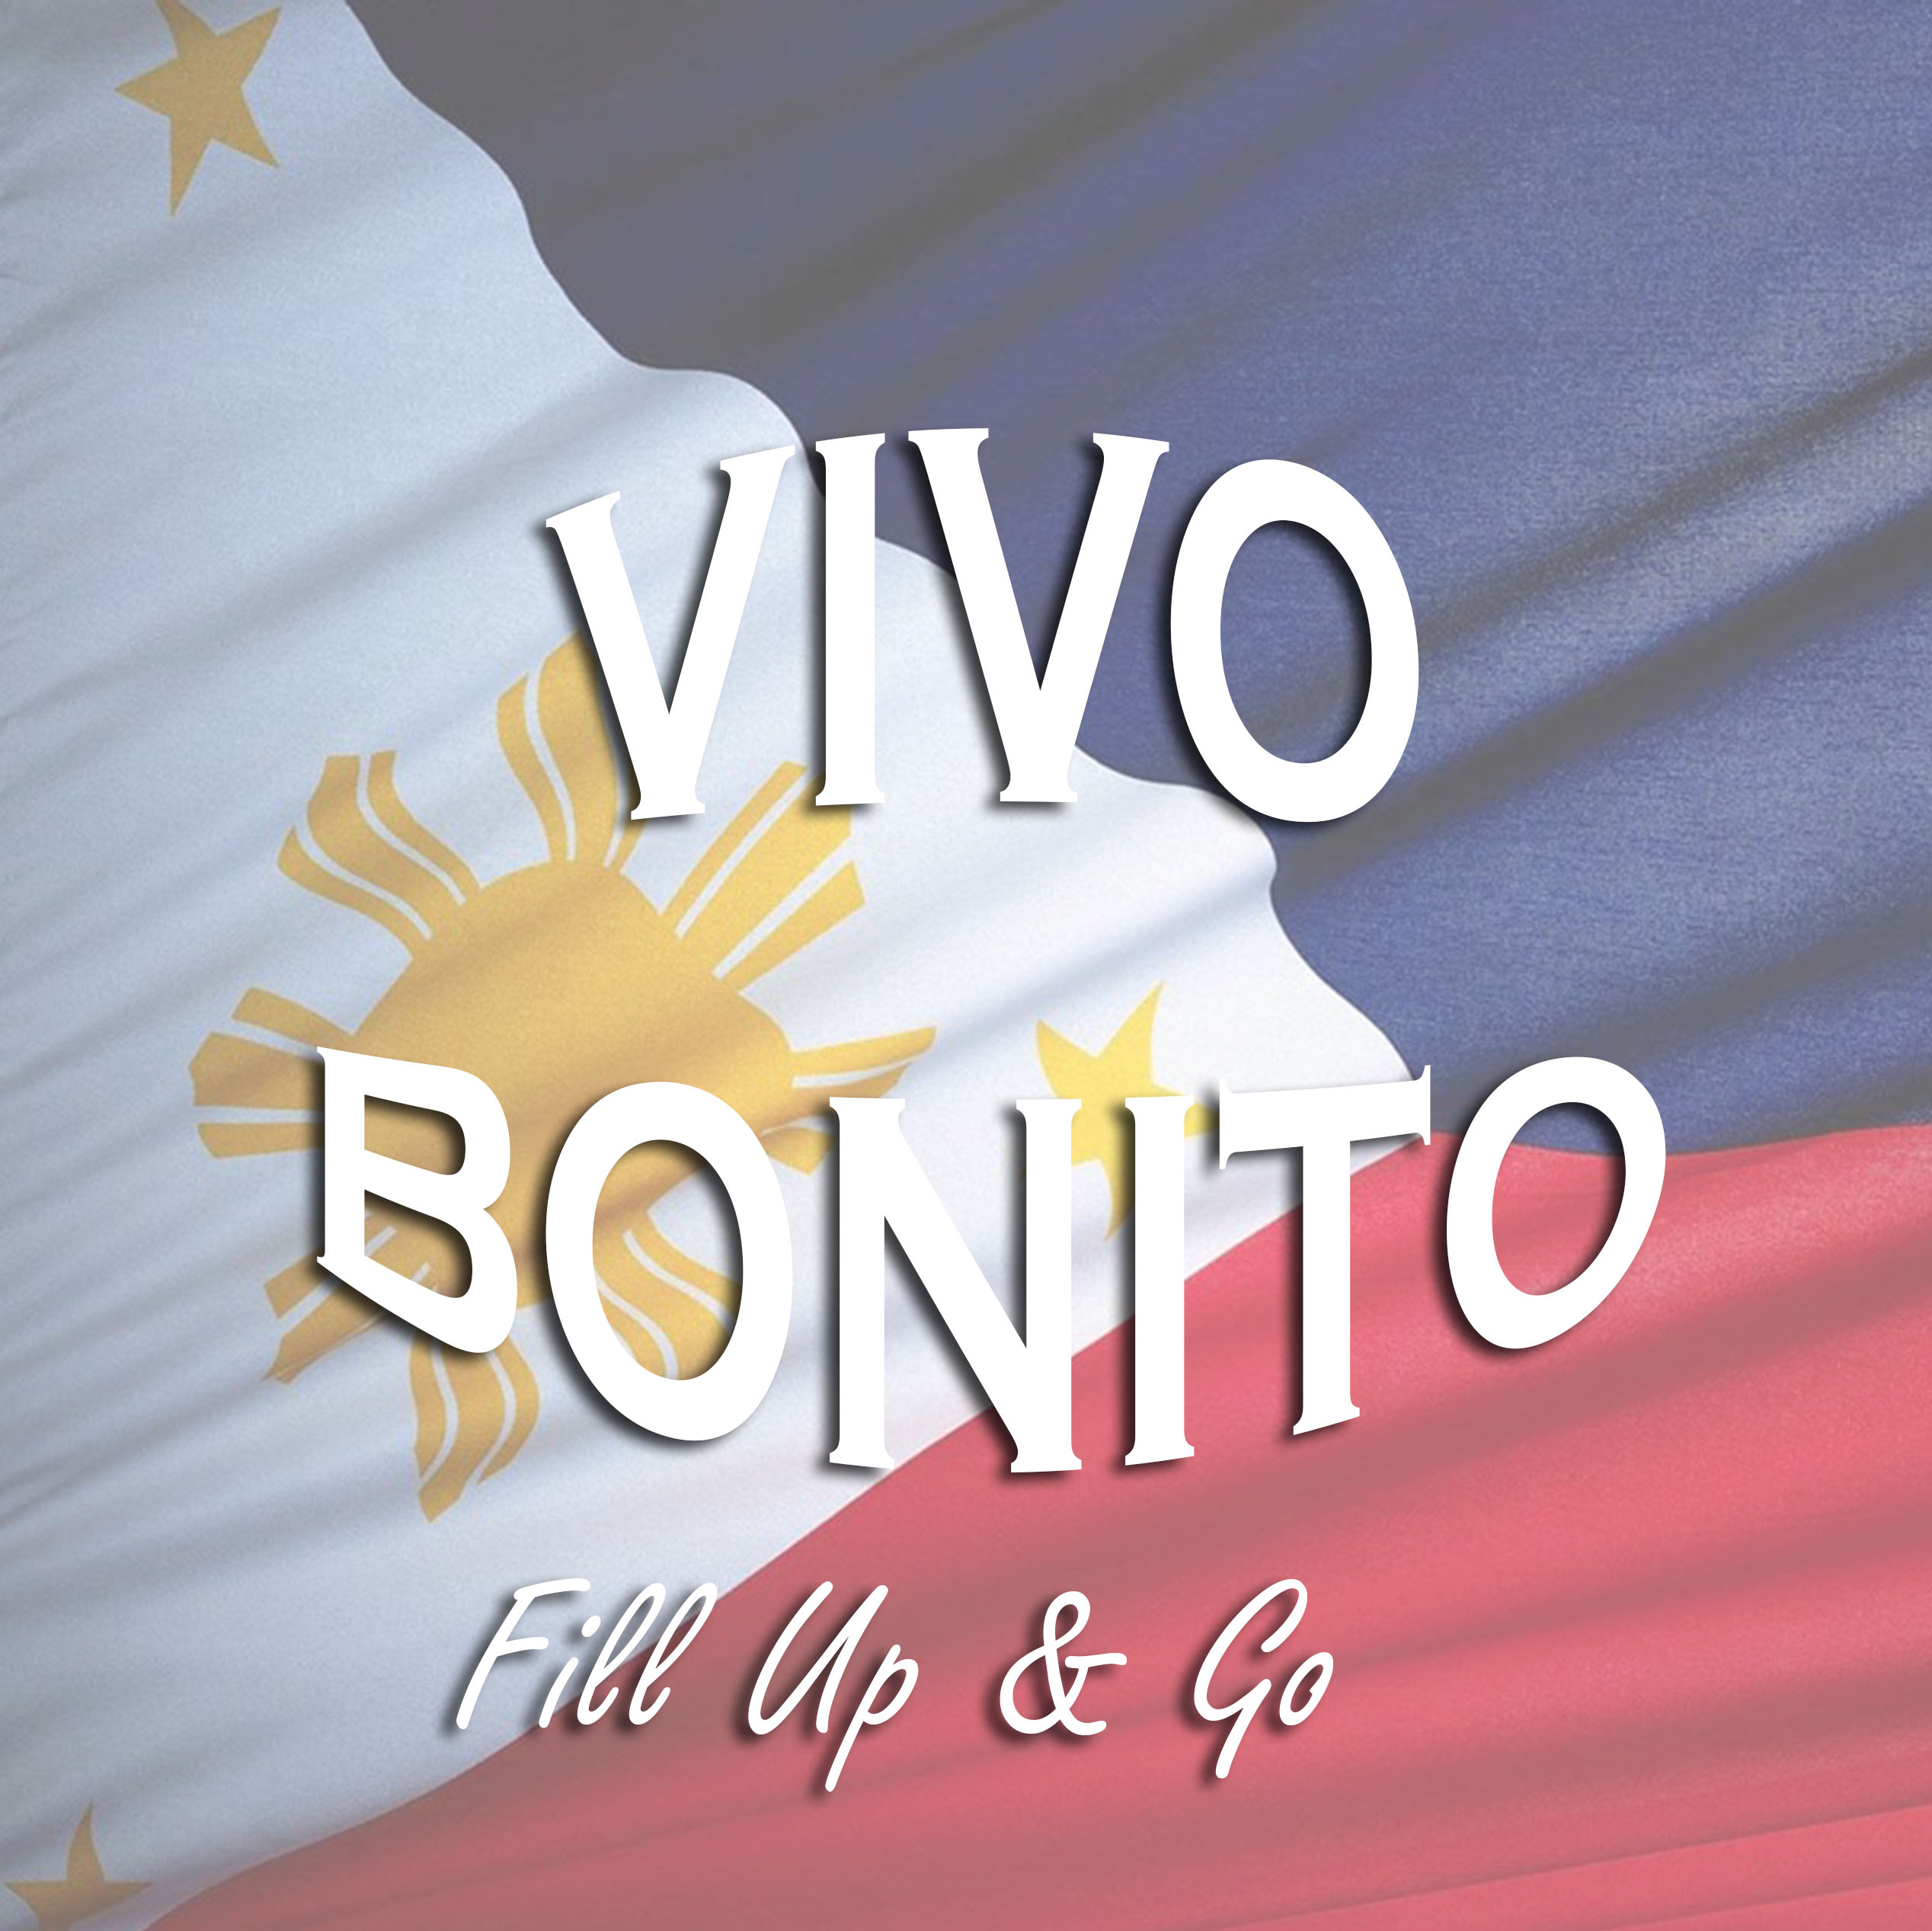 Vivo Bonito Fill Up & Go